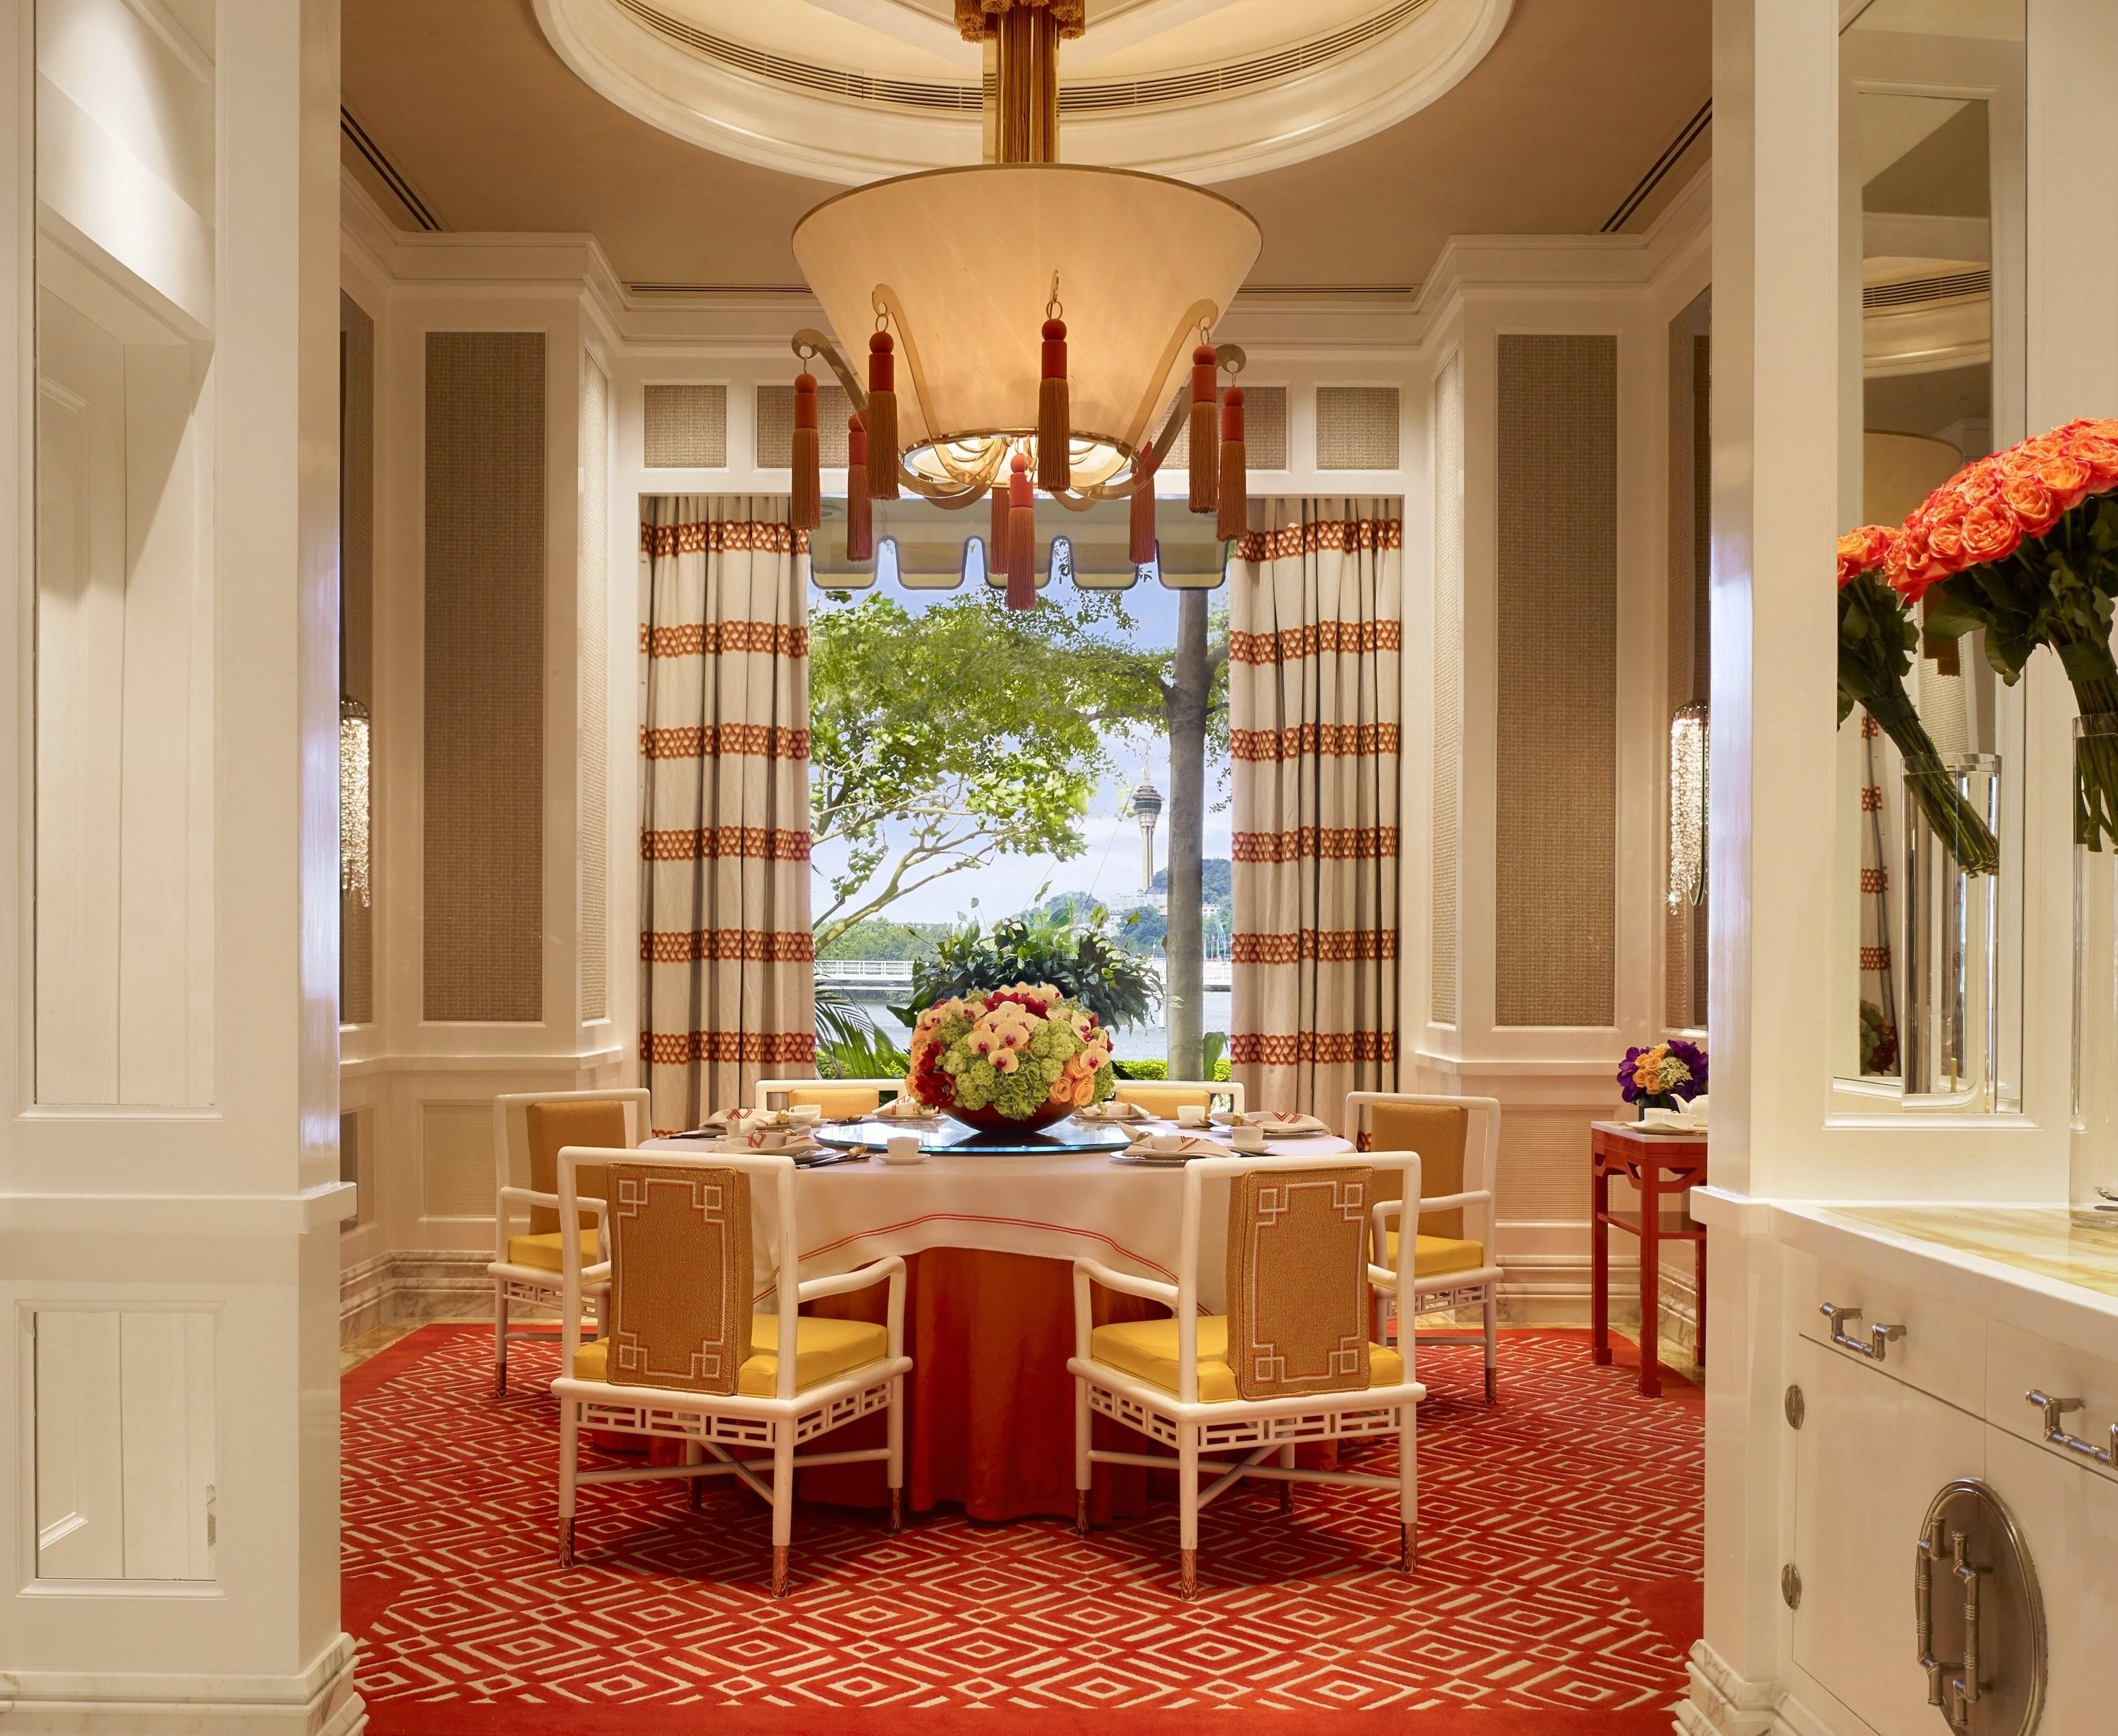 5 Dramatic Interiors By The Roger Thomas Collection Interior Architectural Digest Interior Architecture